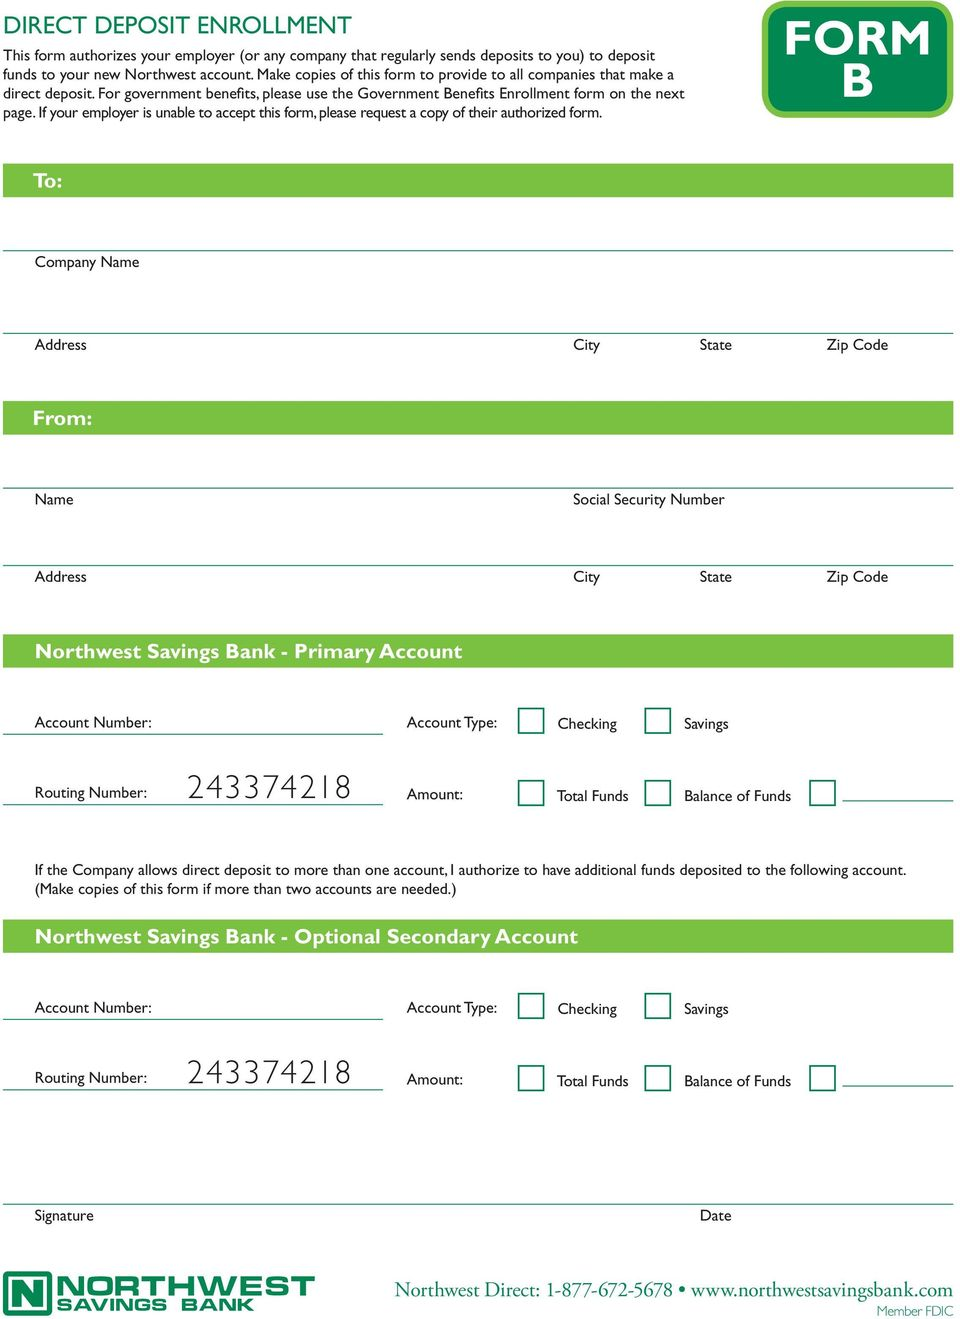 If your employer is unable to accept this form, please request a copy of their authorized form.